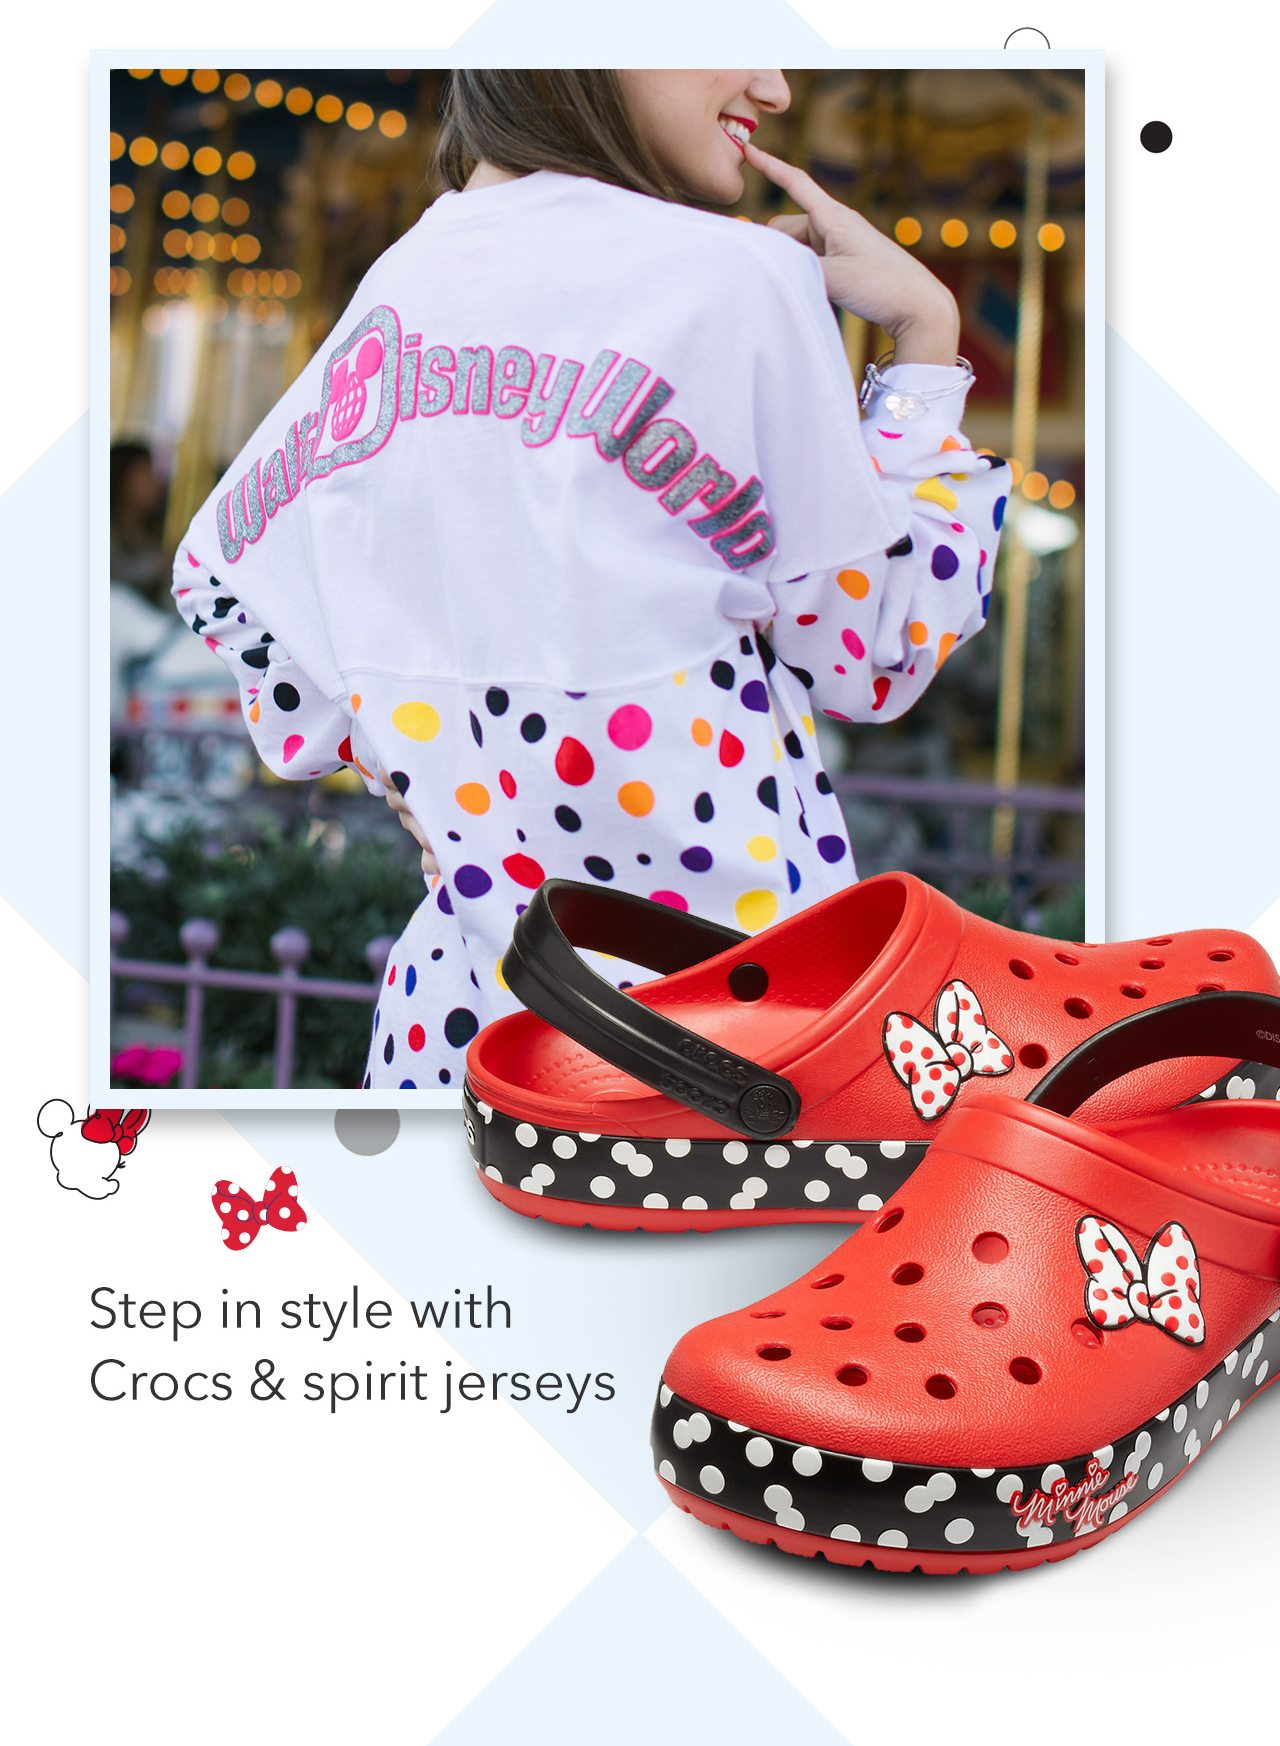 Step in style with Crocs & spirit jerseys